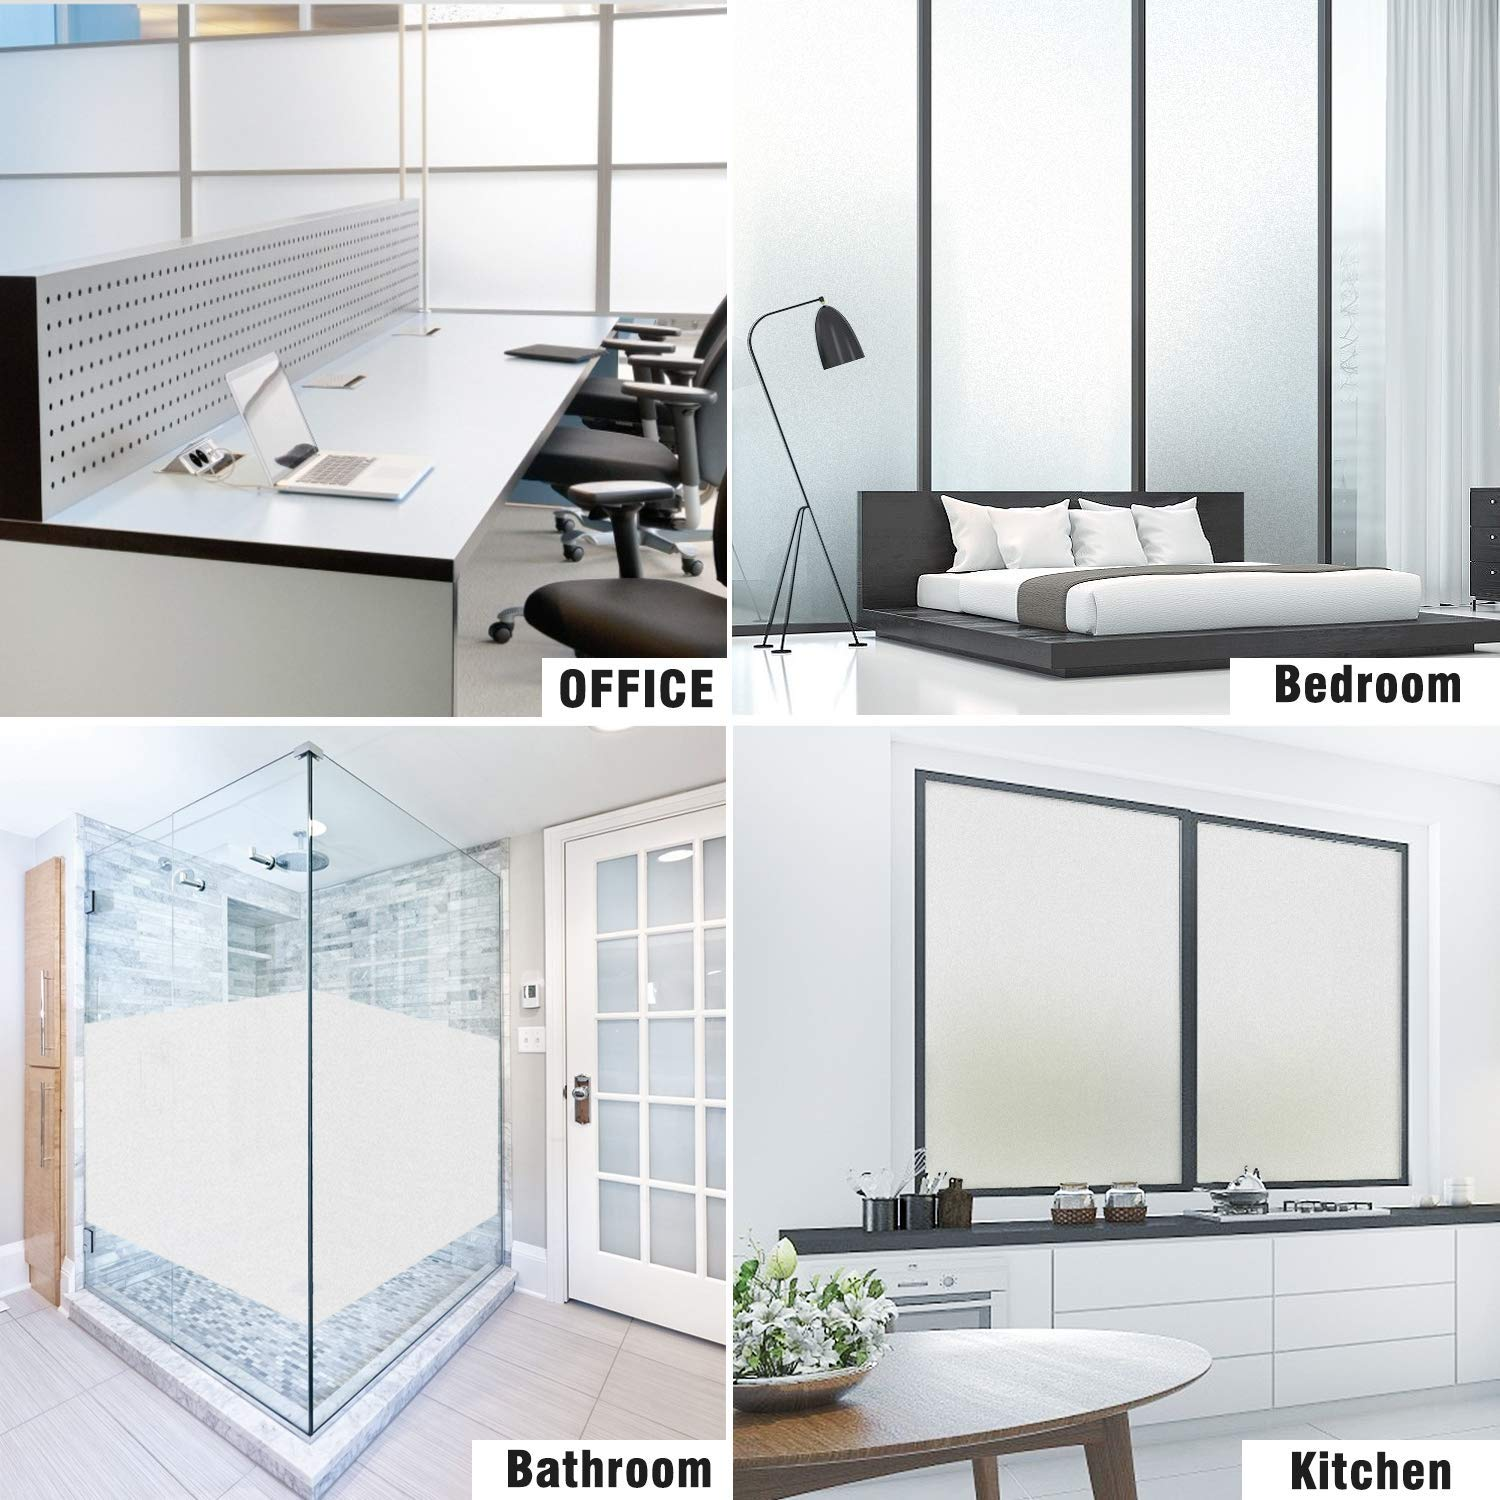 SW Privacy Matte White Window Film, White Frosted Window Sticker, Adhesive Opaque Window Tint for Home, Office, Bathroom, Meeting and Living Room, 35.4'' x10ft by SW (Image #7)